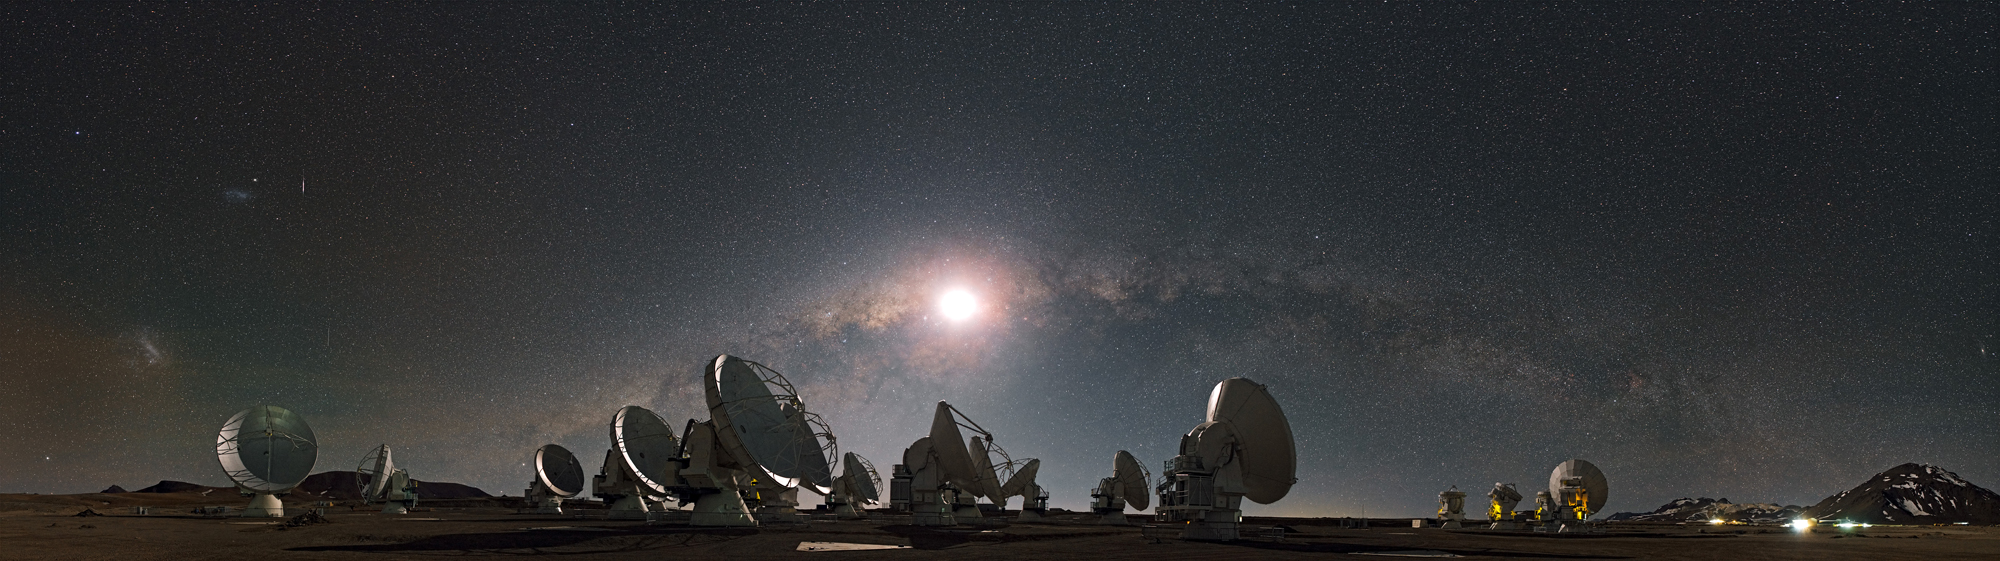 Moon, Milky Way, and ALMA Telescope